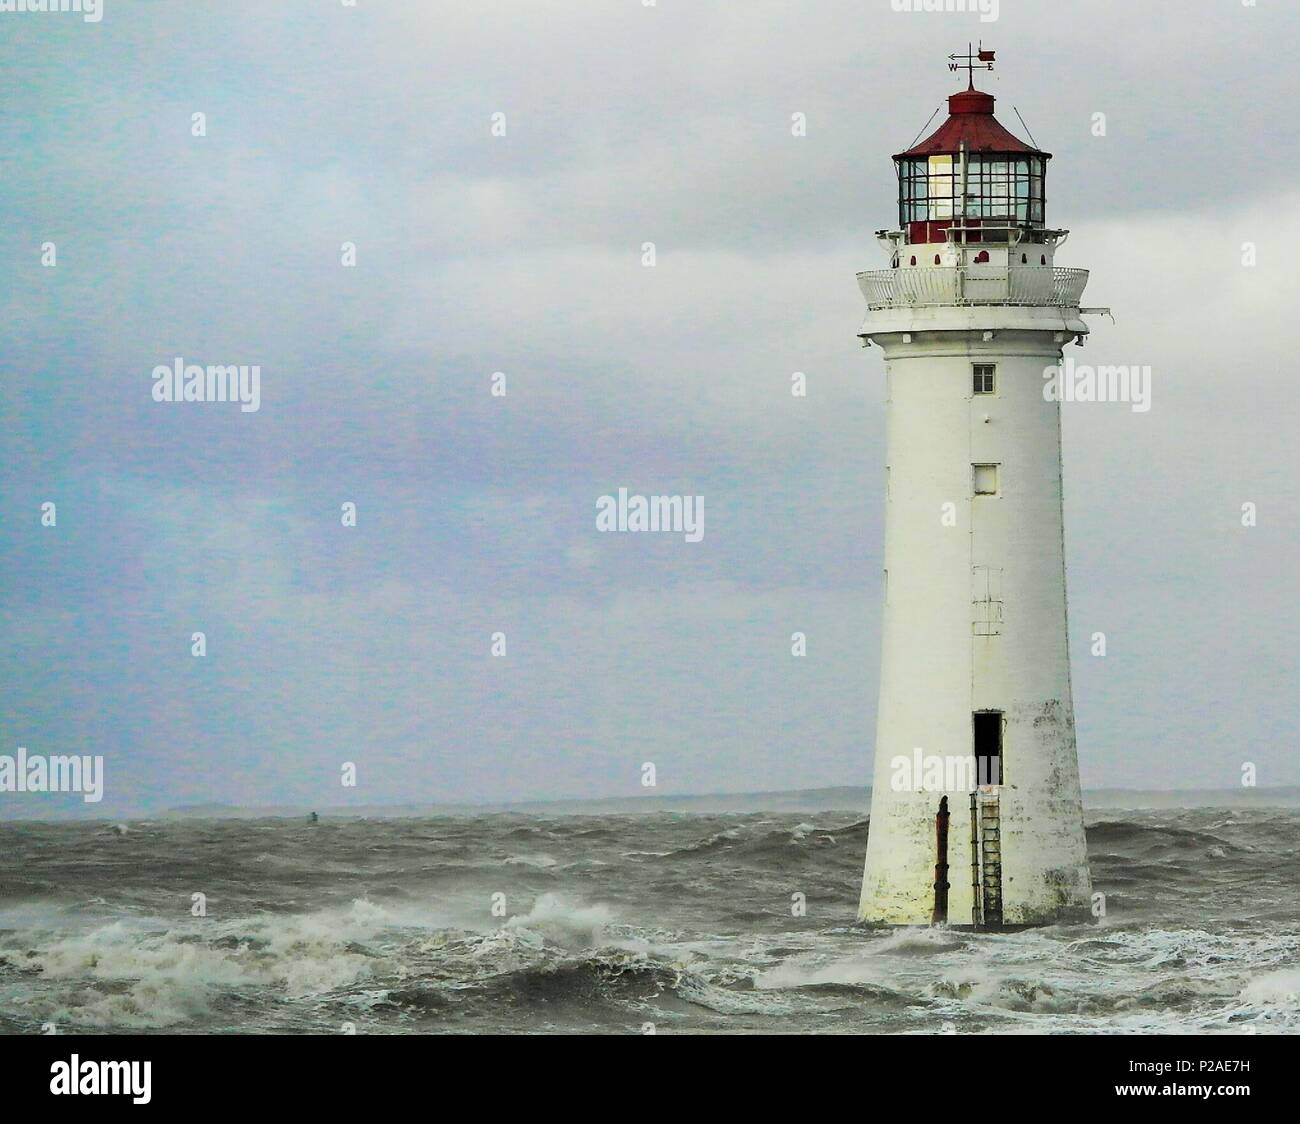 Liverpool, UK. 14th June 2018. Liverpool,Uk, Storm Hector hits Merseyside credit Ian Fairbrother/Alamy Live News - Stock Image